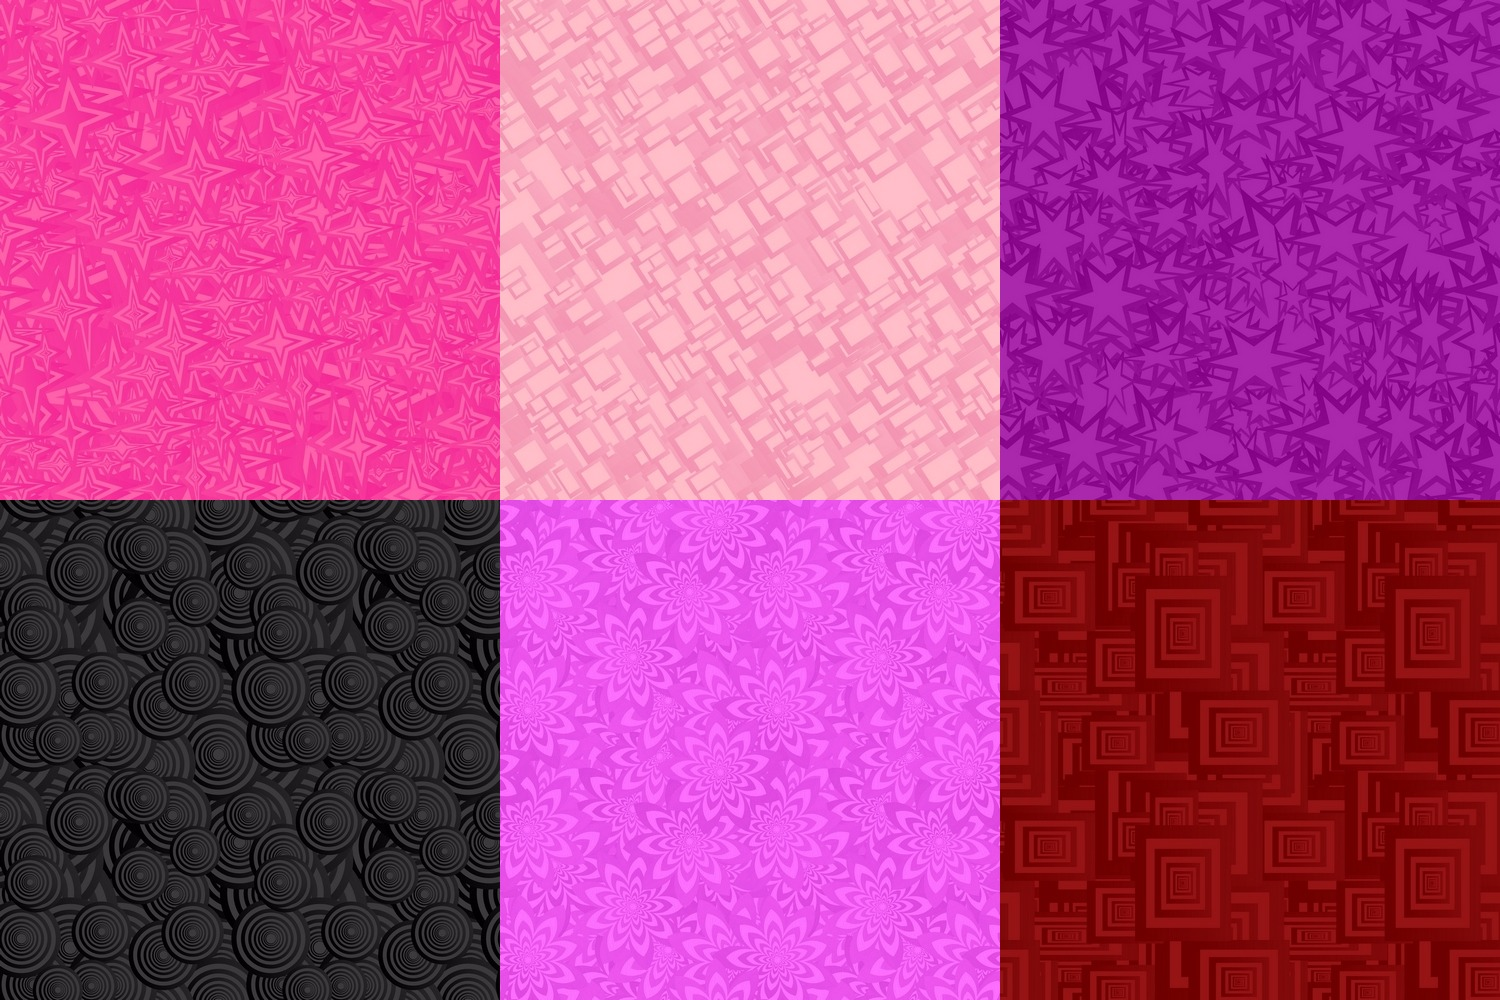 80 seamless pattern backgrounds - AI, EPS, JPG 5000x5000 example image 2